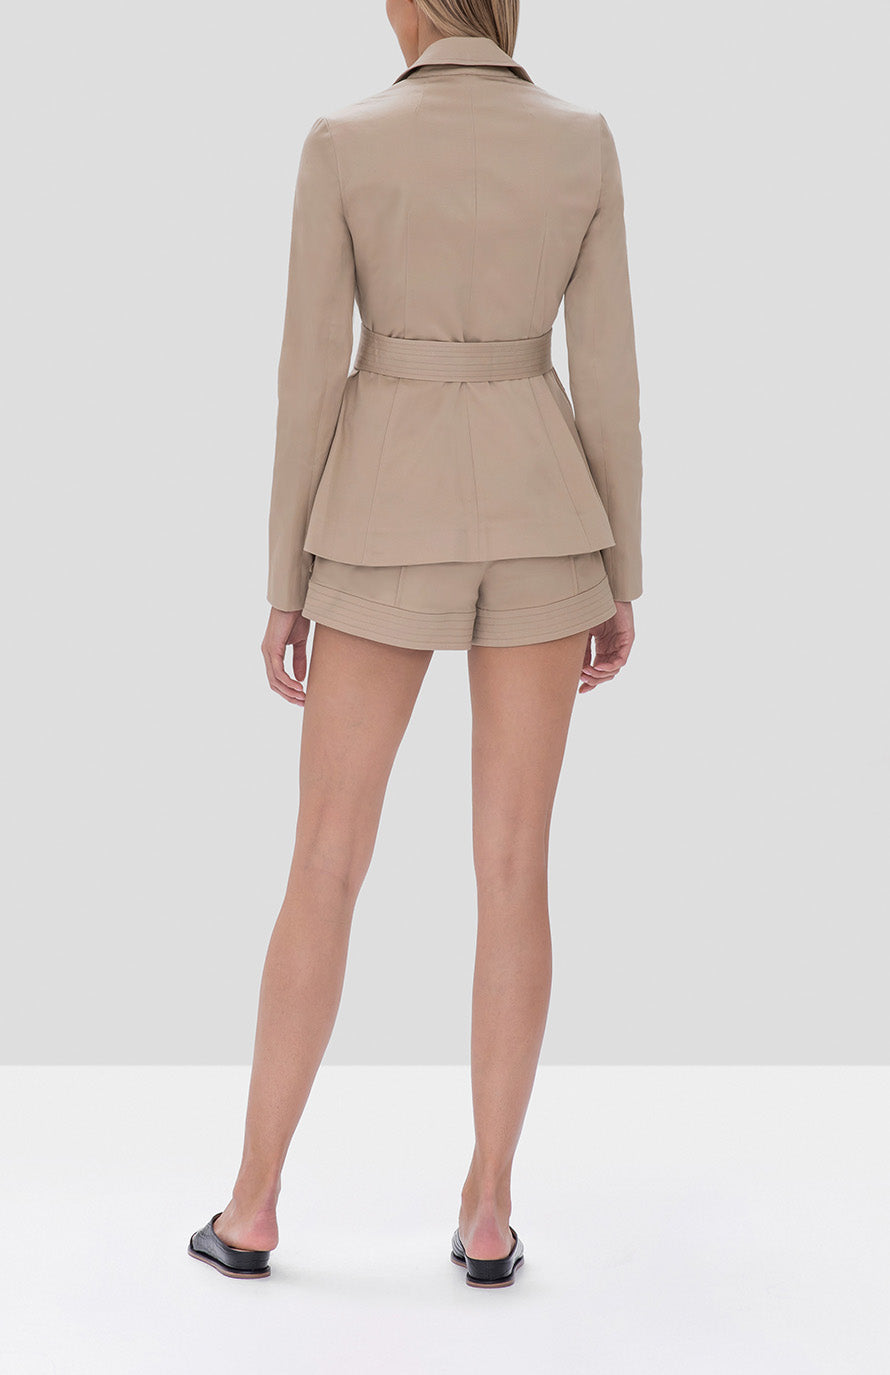 Alexis Elka Jacket and Winnick Shorts in Tan - Rear View